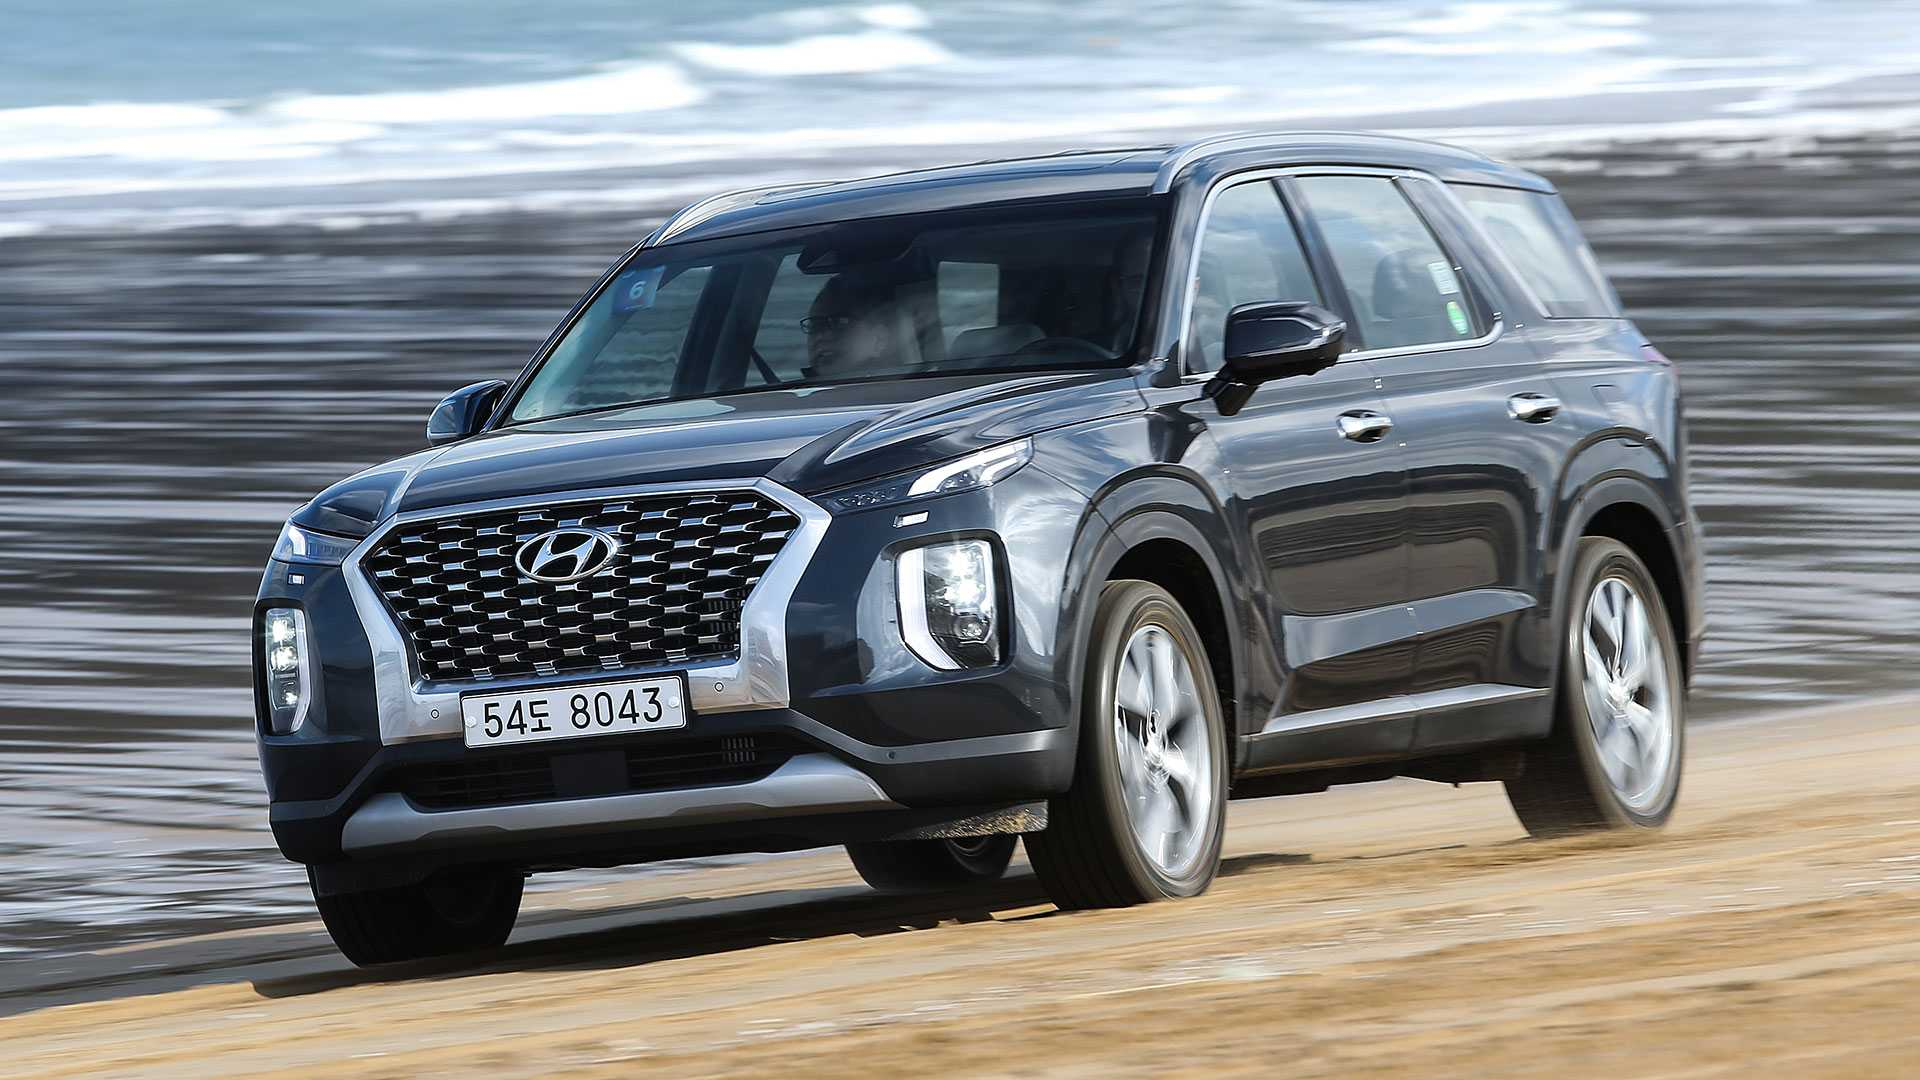 34 All New 2020 Hyundai Palisade Trim Levels Spy Shoot by 2020 Hyundai Palisade Trim Levels